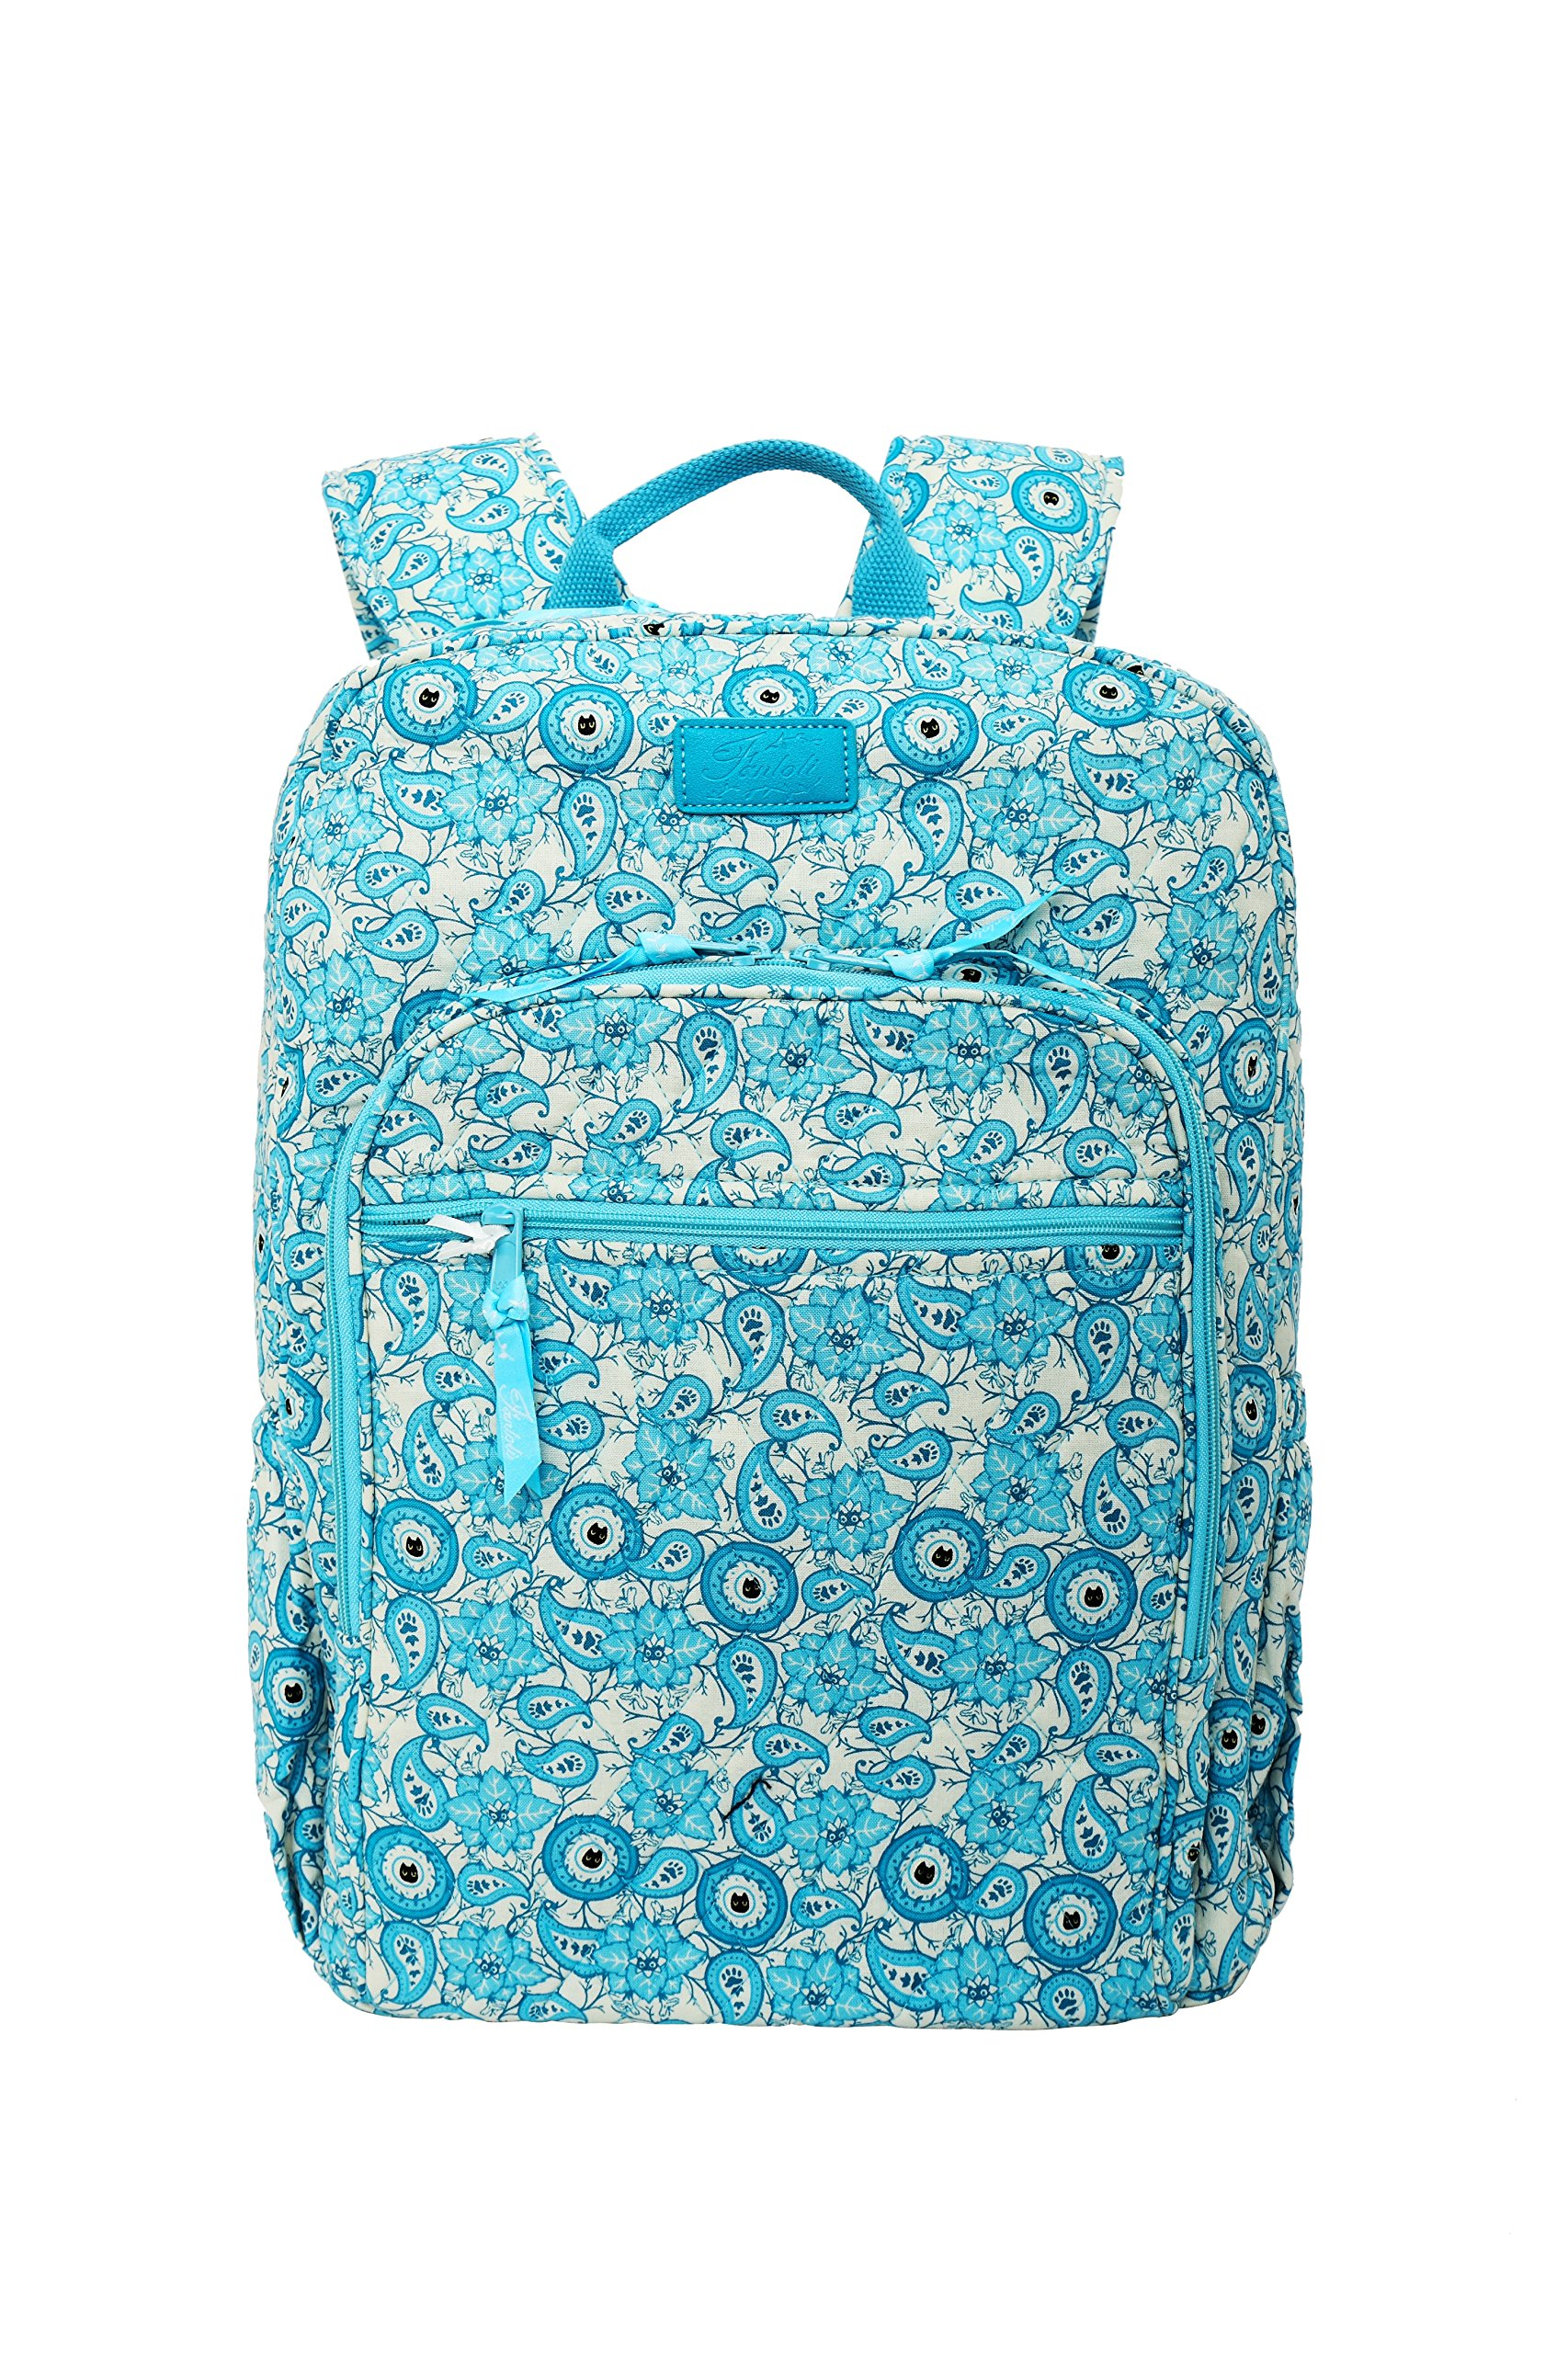 Fanloli Quilted Cotton College Travel Backpack in Kitty Lost in the Garden